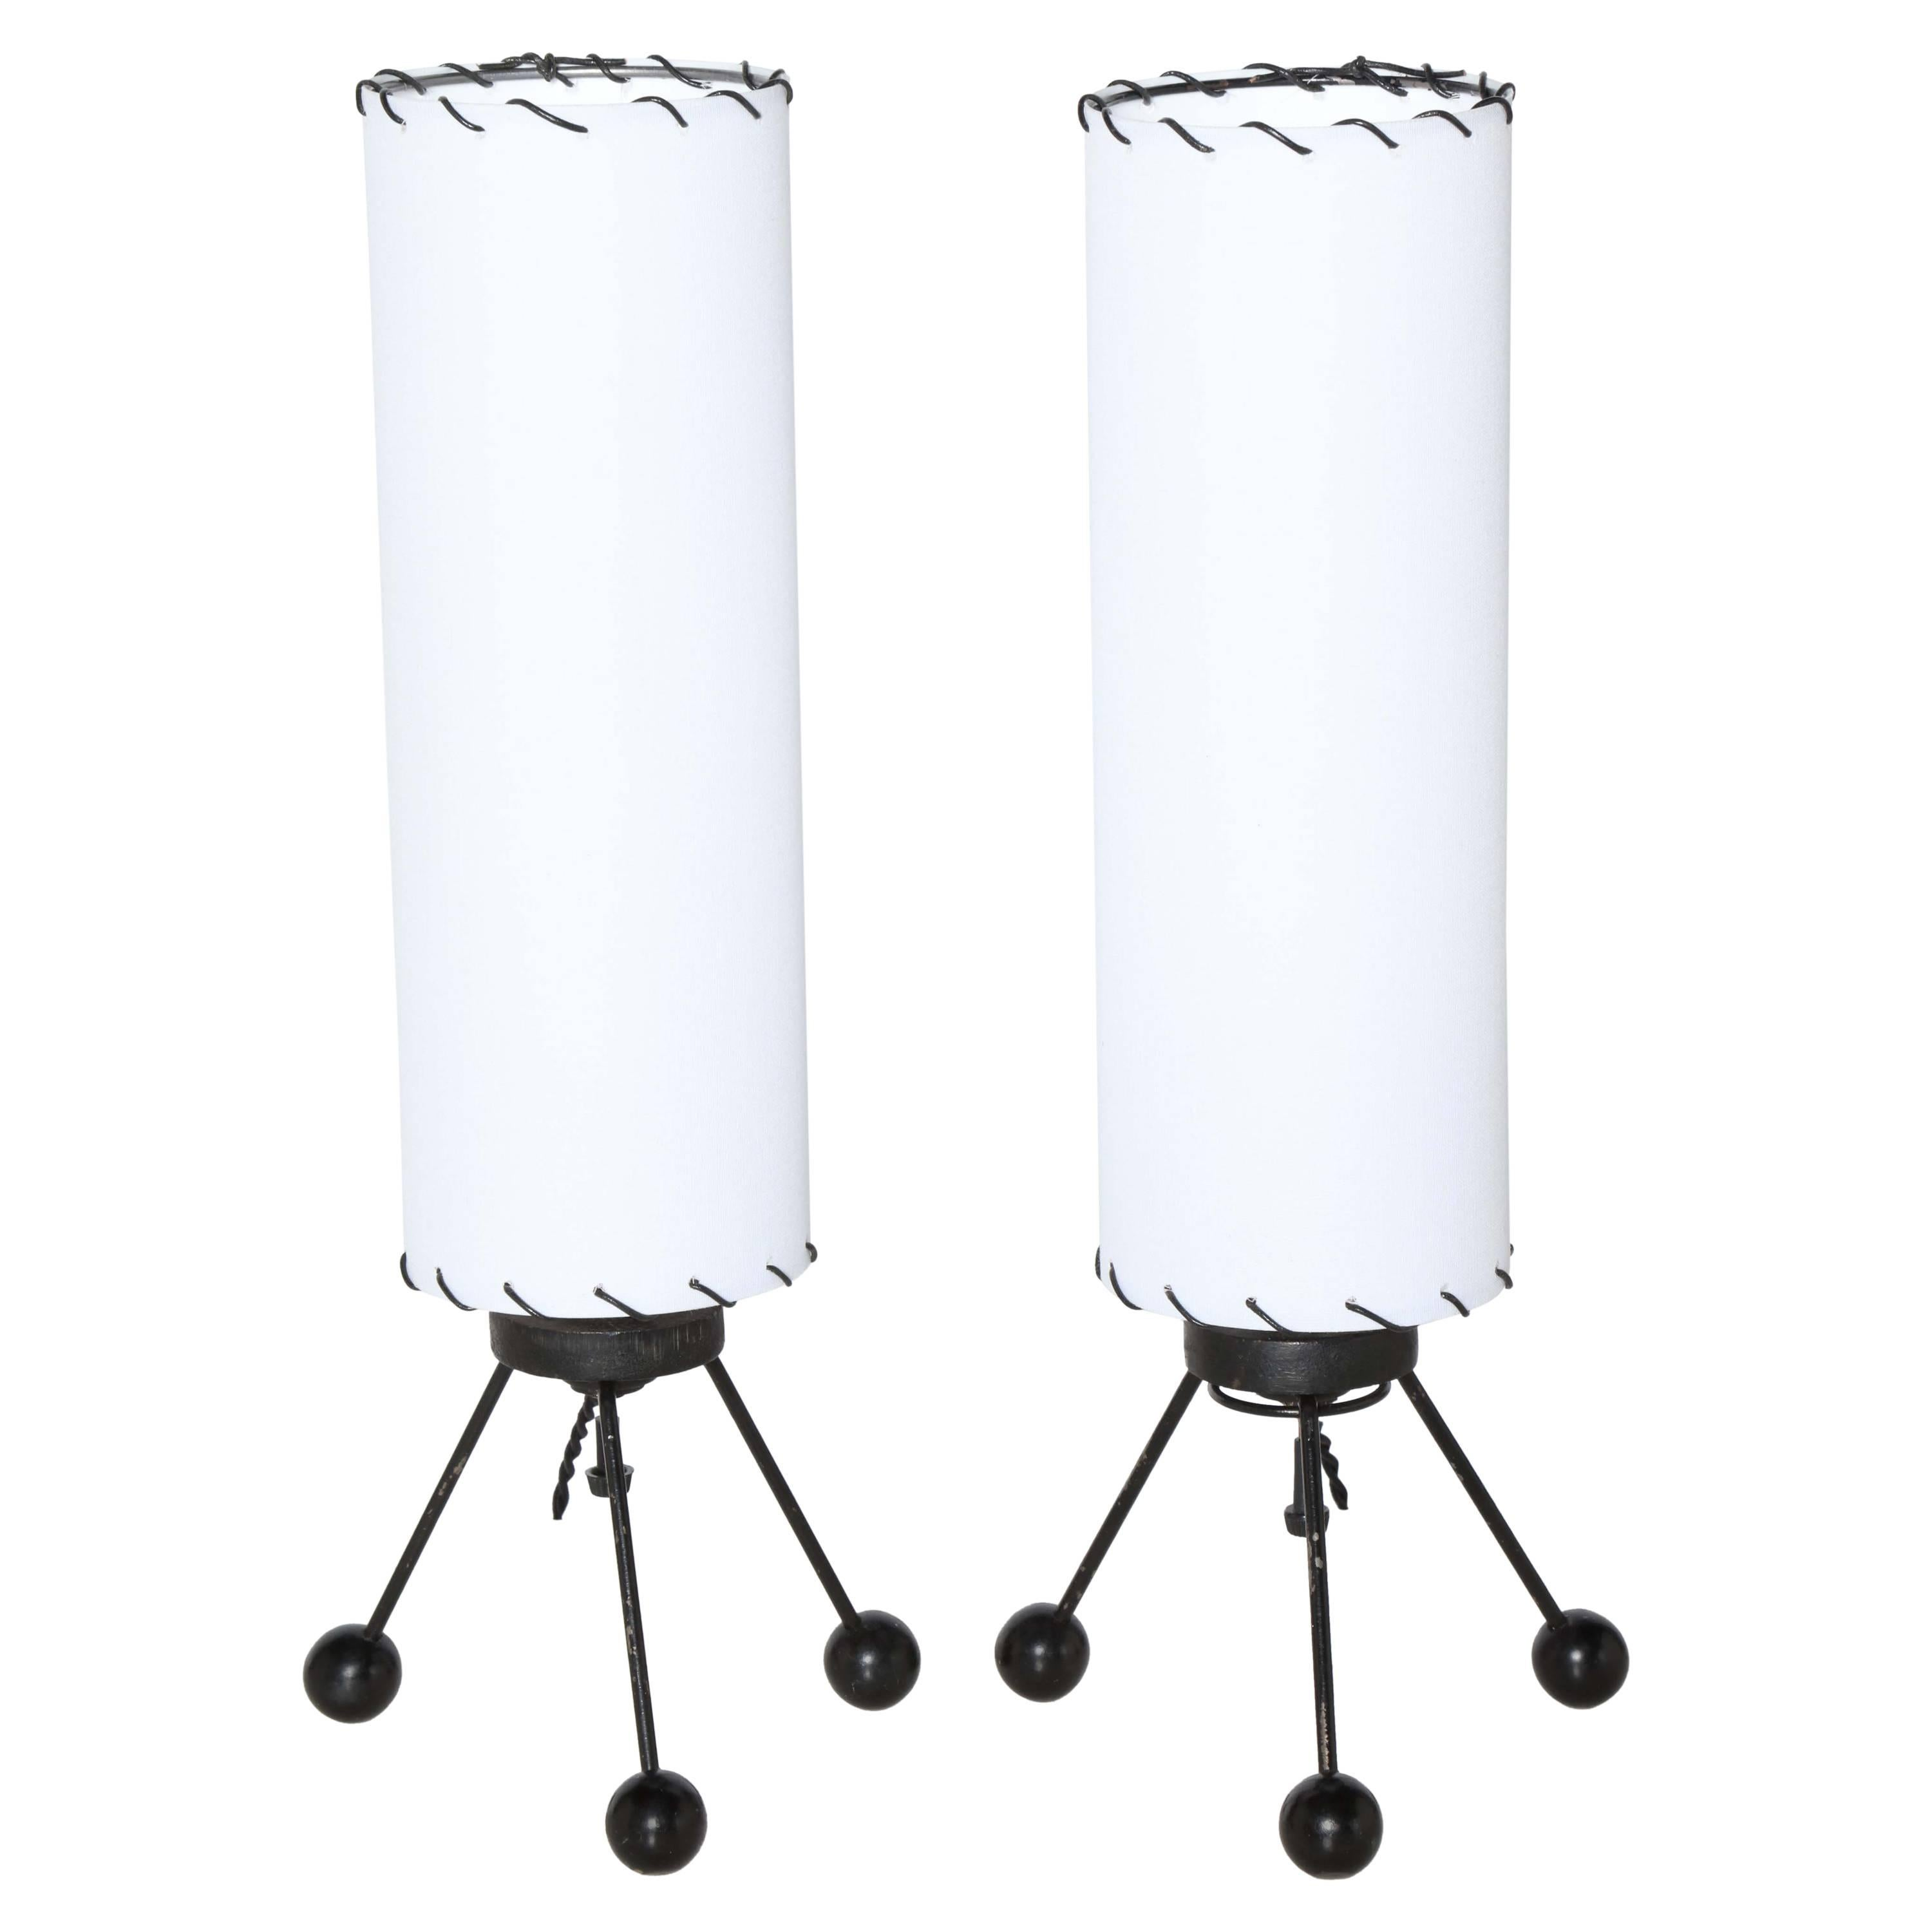 Small Pair of Verplex Co. Black Tripod Table Lamps with White Linen Shades, 1950